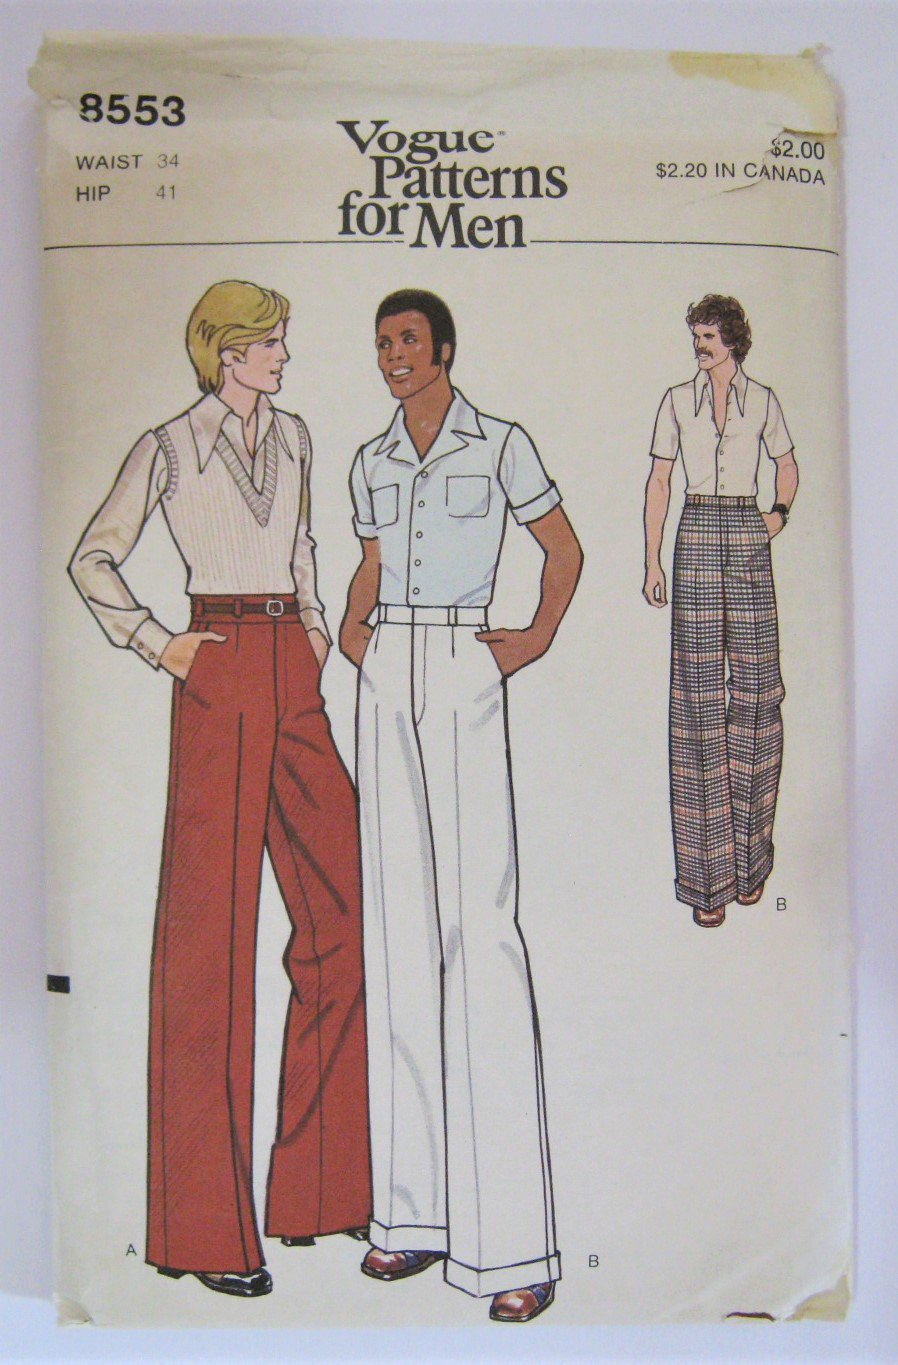 VTG 1970s Mens Pants Sewing Pattern Wide Leg Disco Era Vogue 8553 Waist 34 Hip 41